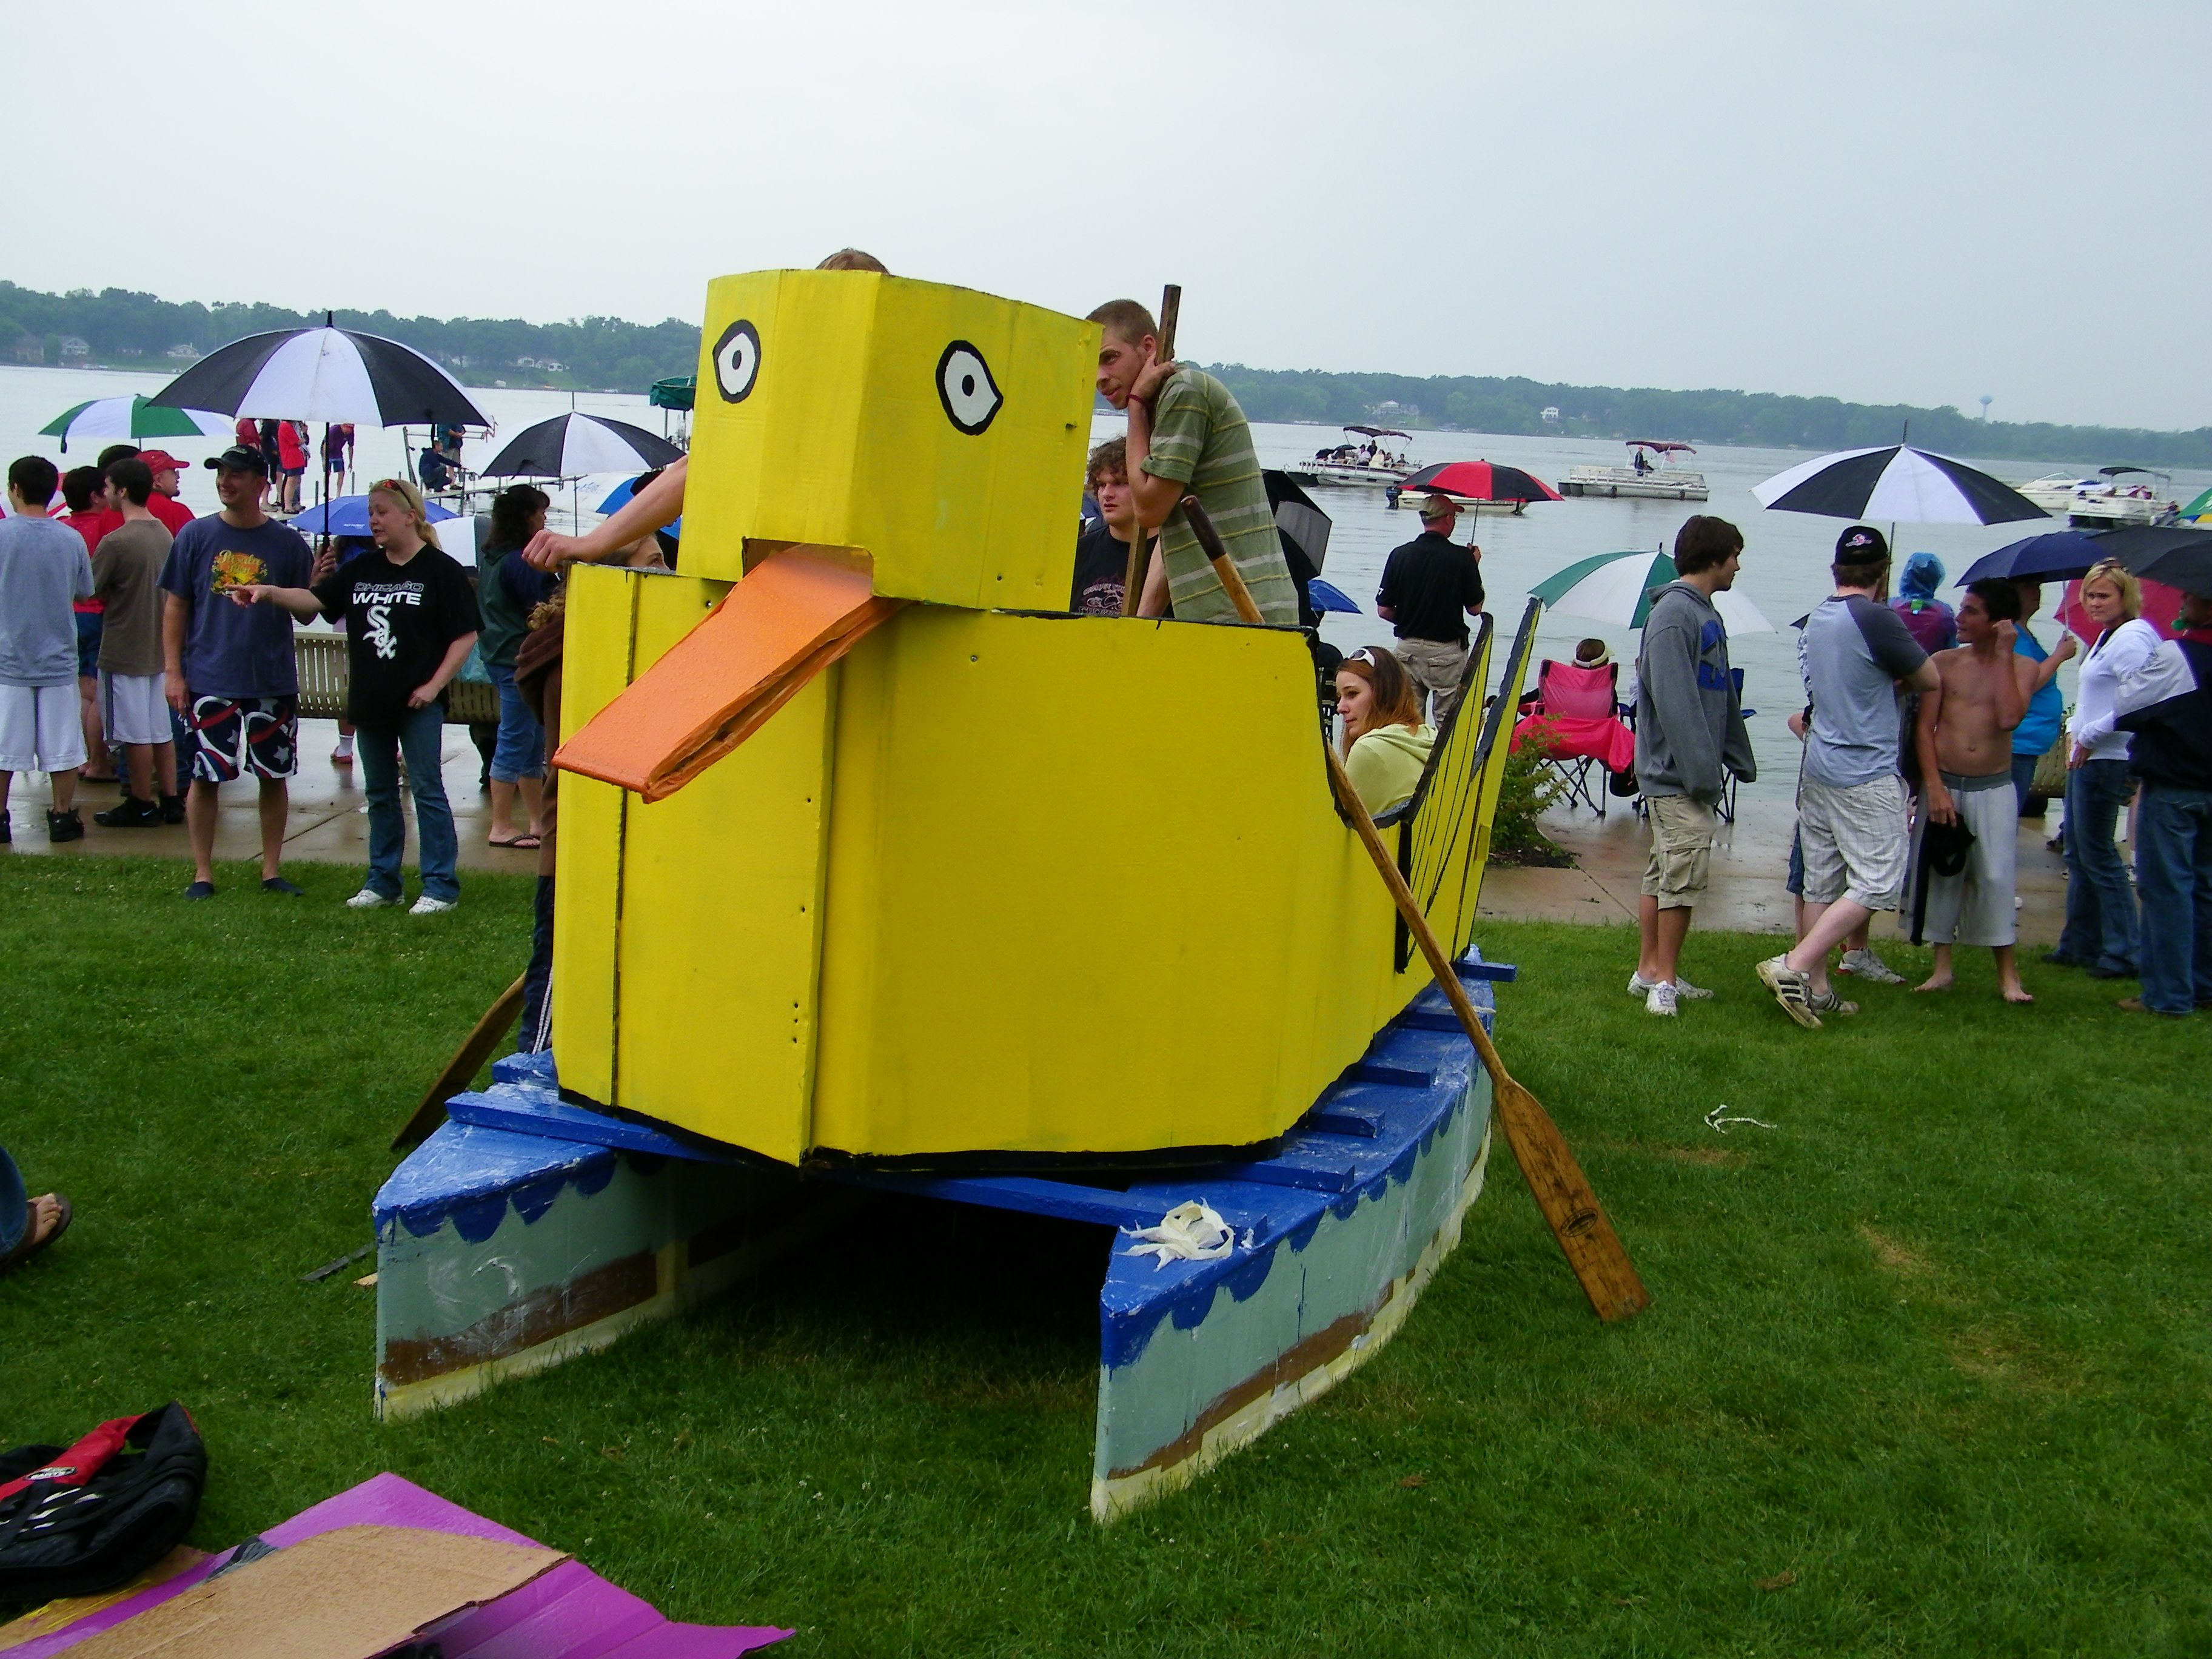 The Great Cedar Lake Cardboard Boat Race Held Yearly At Summerfest Over